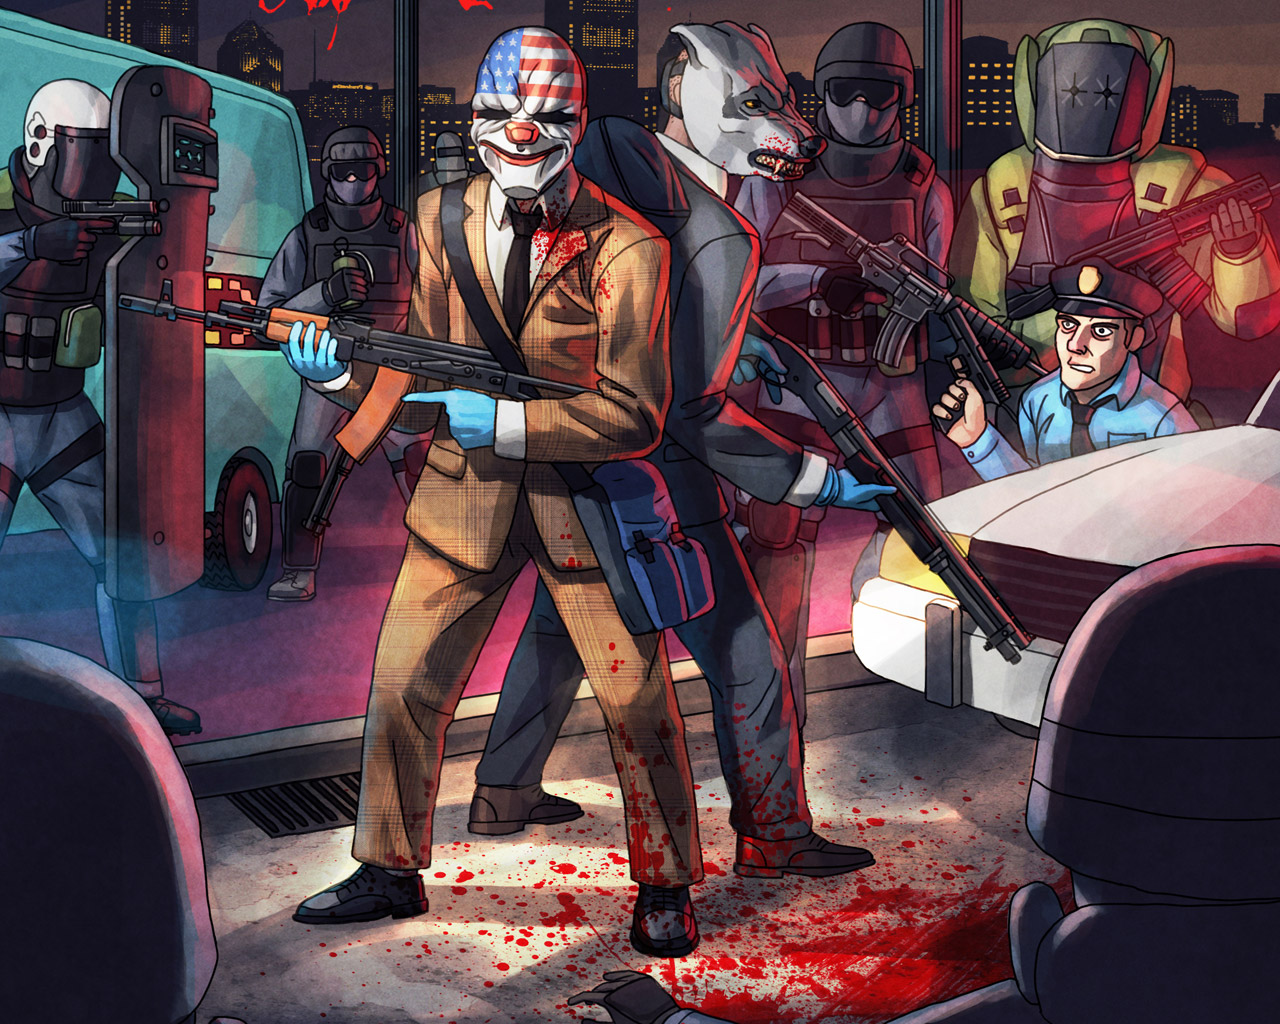 Free Payday 2 Wallpaper in 1280x1024